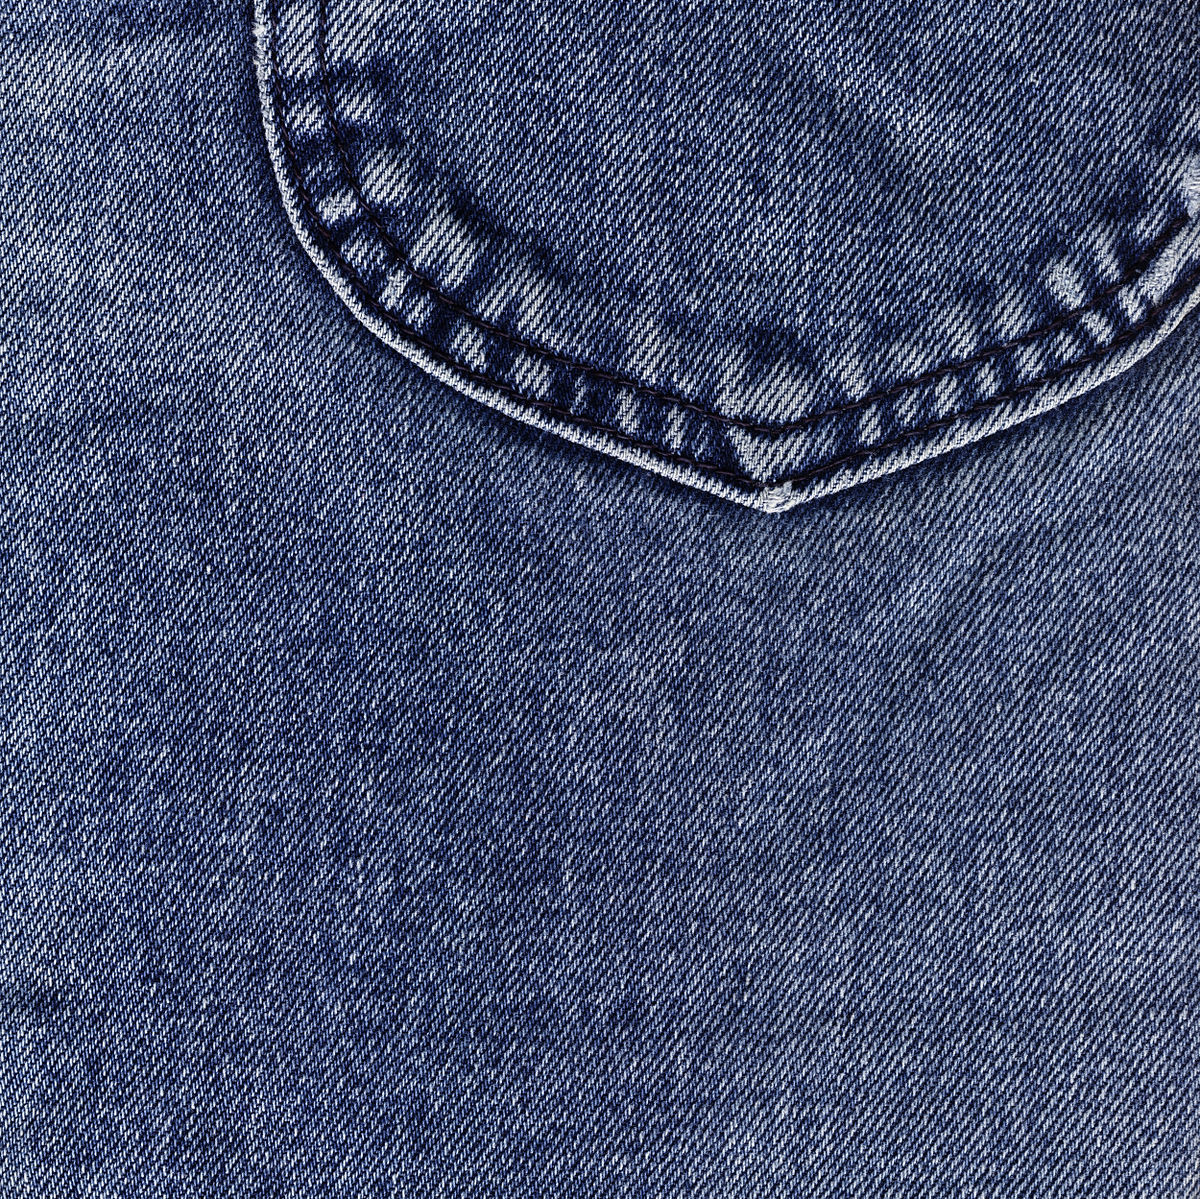 fd7c9f4c09a Denim - Wikipedia